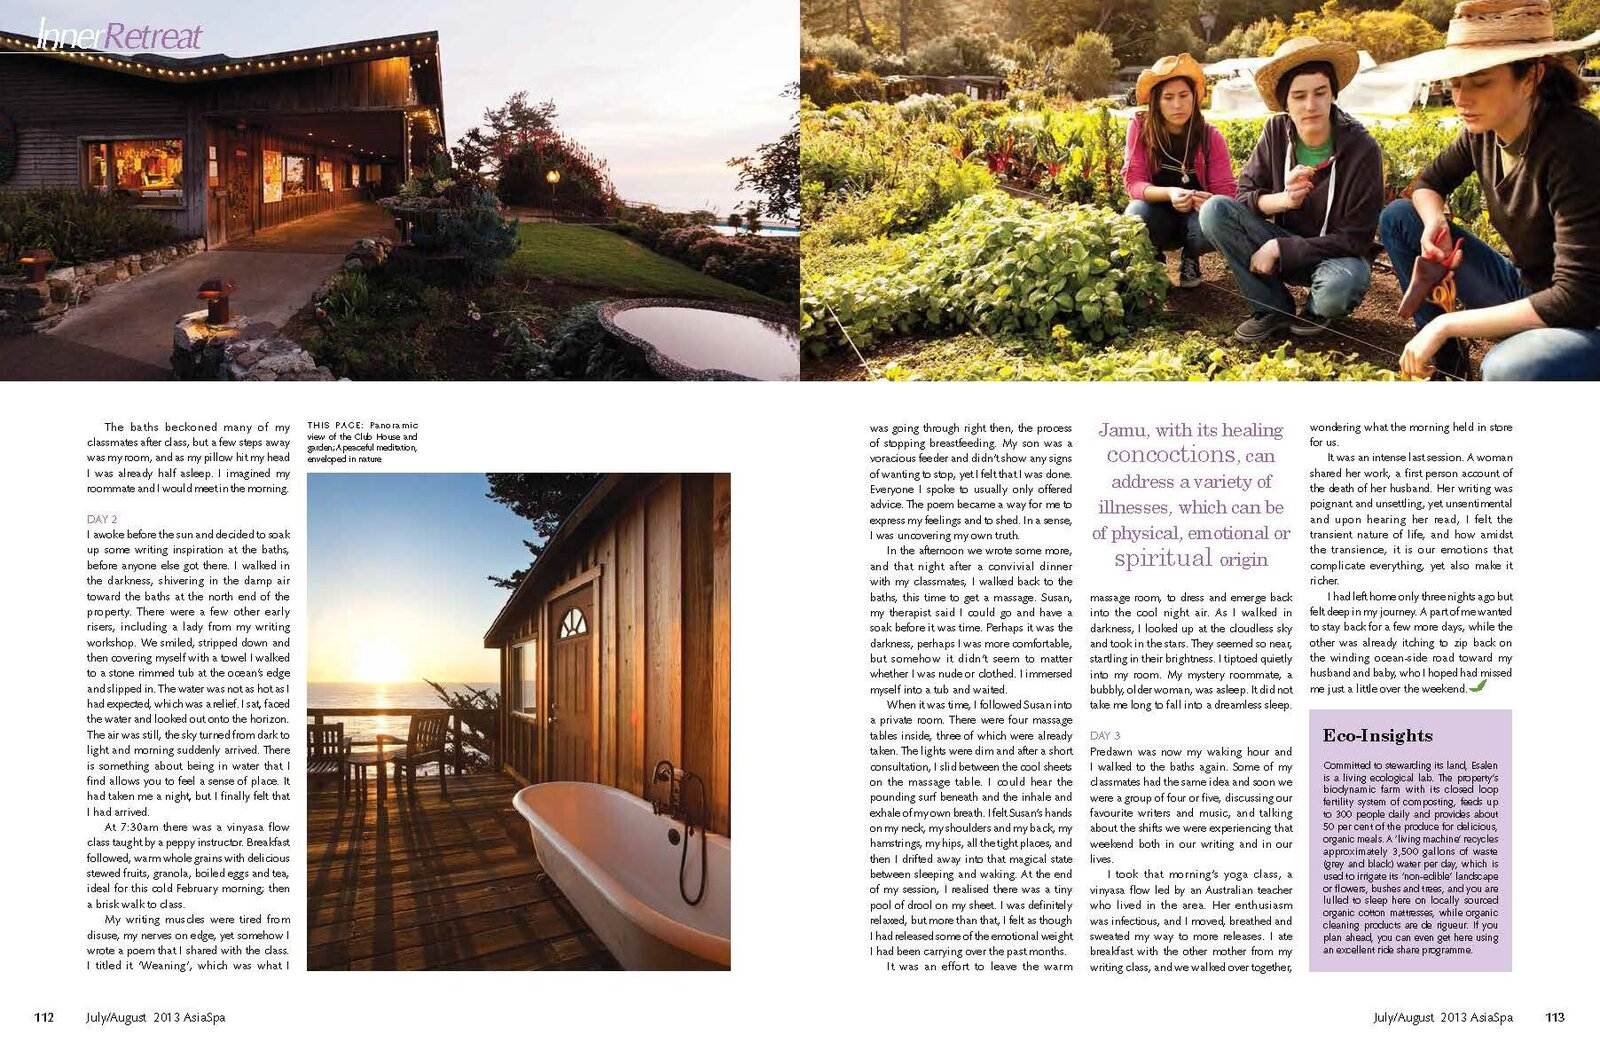 asia-spa-july-august-2013-inner-retreat_Page_4